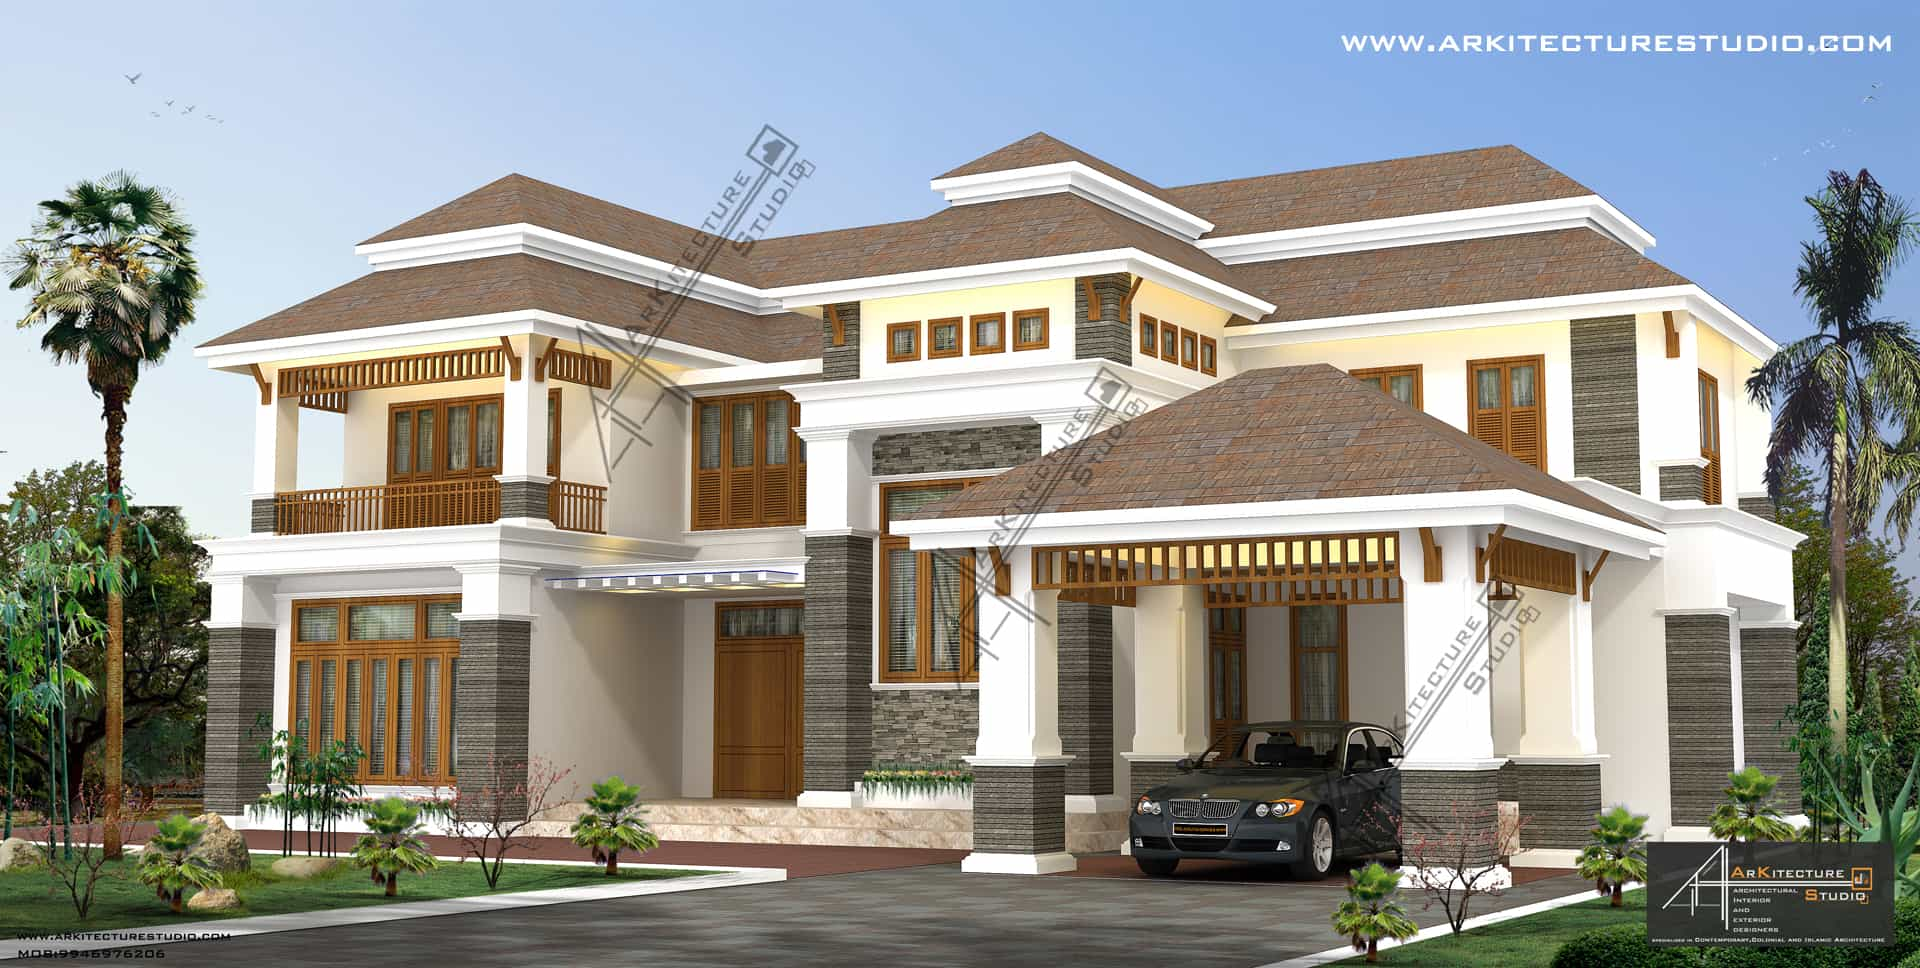 Colonial style house designs in kerala at 3500 sqft 5000 for Classic colonial home plans